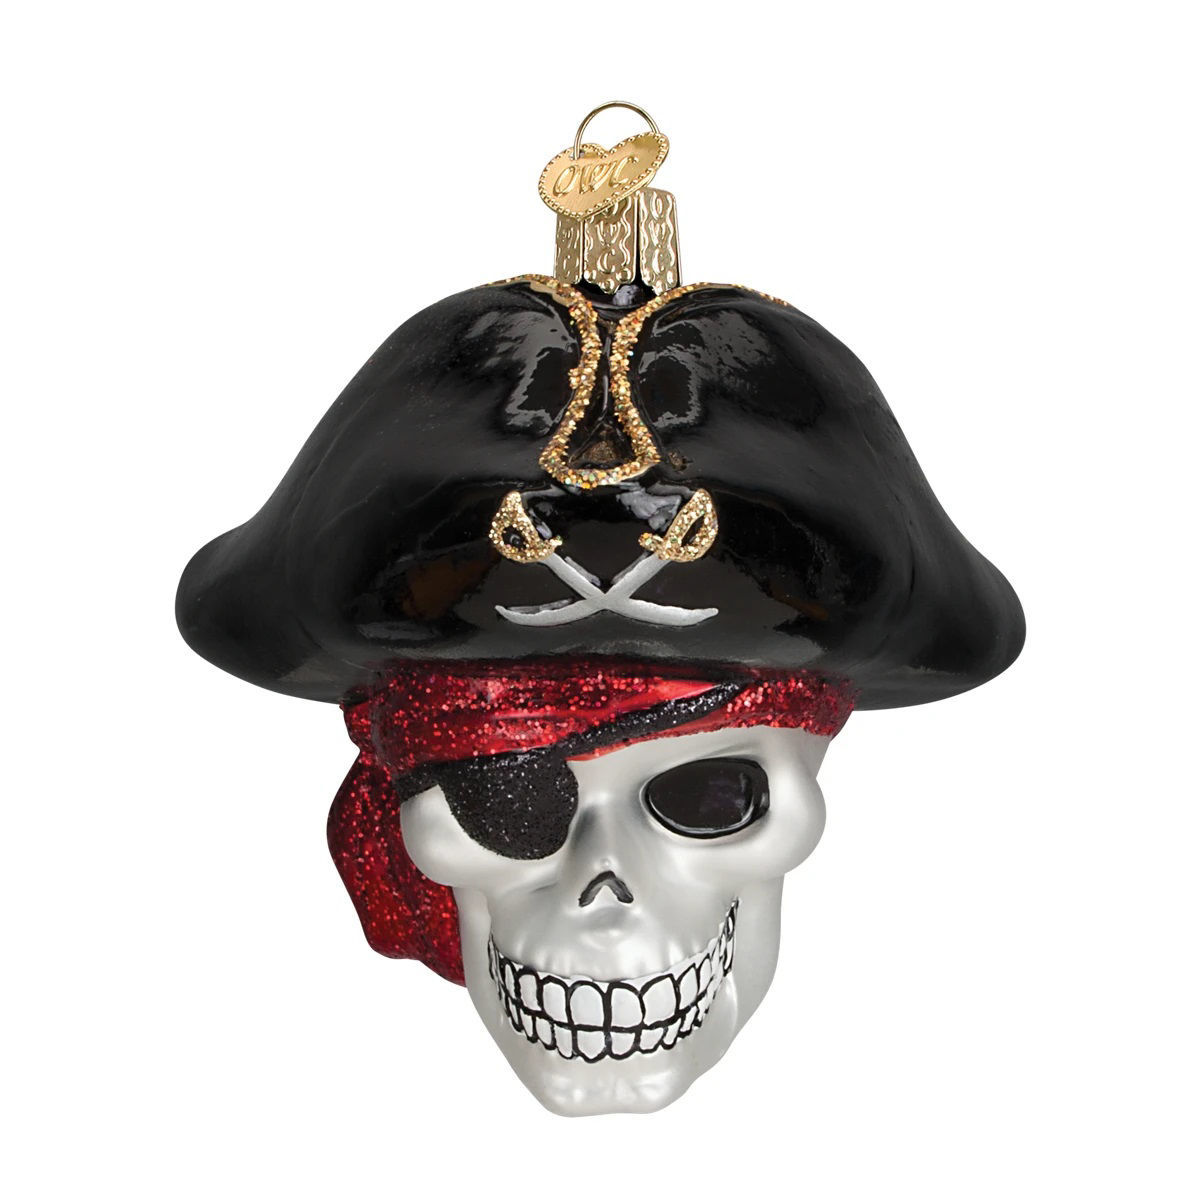 Jolly Roger Ornament by Old World Christmas